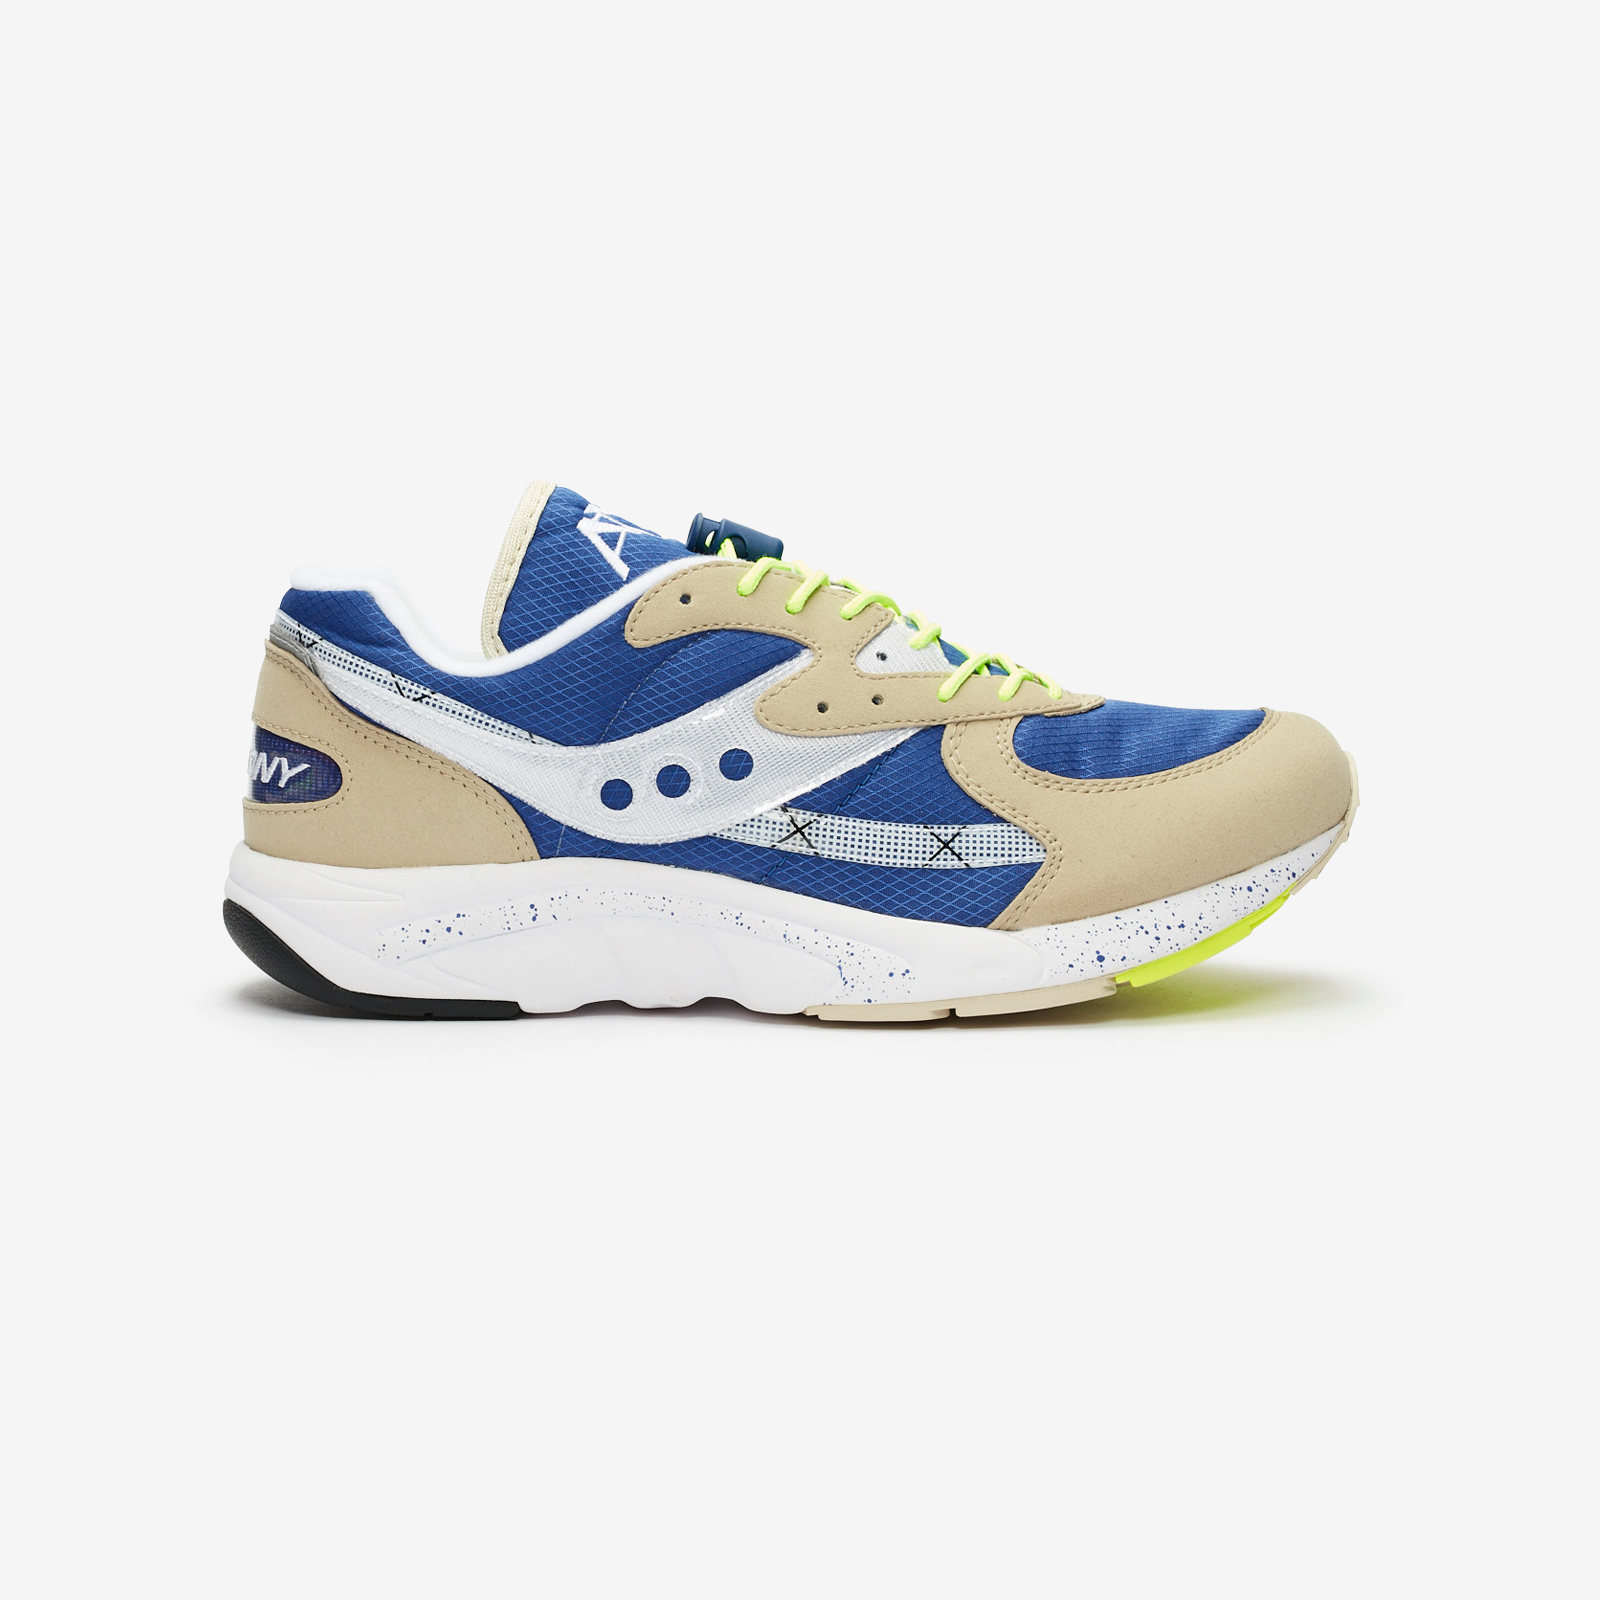 """S70460-2 White//Blue//Light Blue Saucony Aya /""""Limited Edition/"""" Sneakers"""